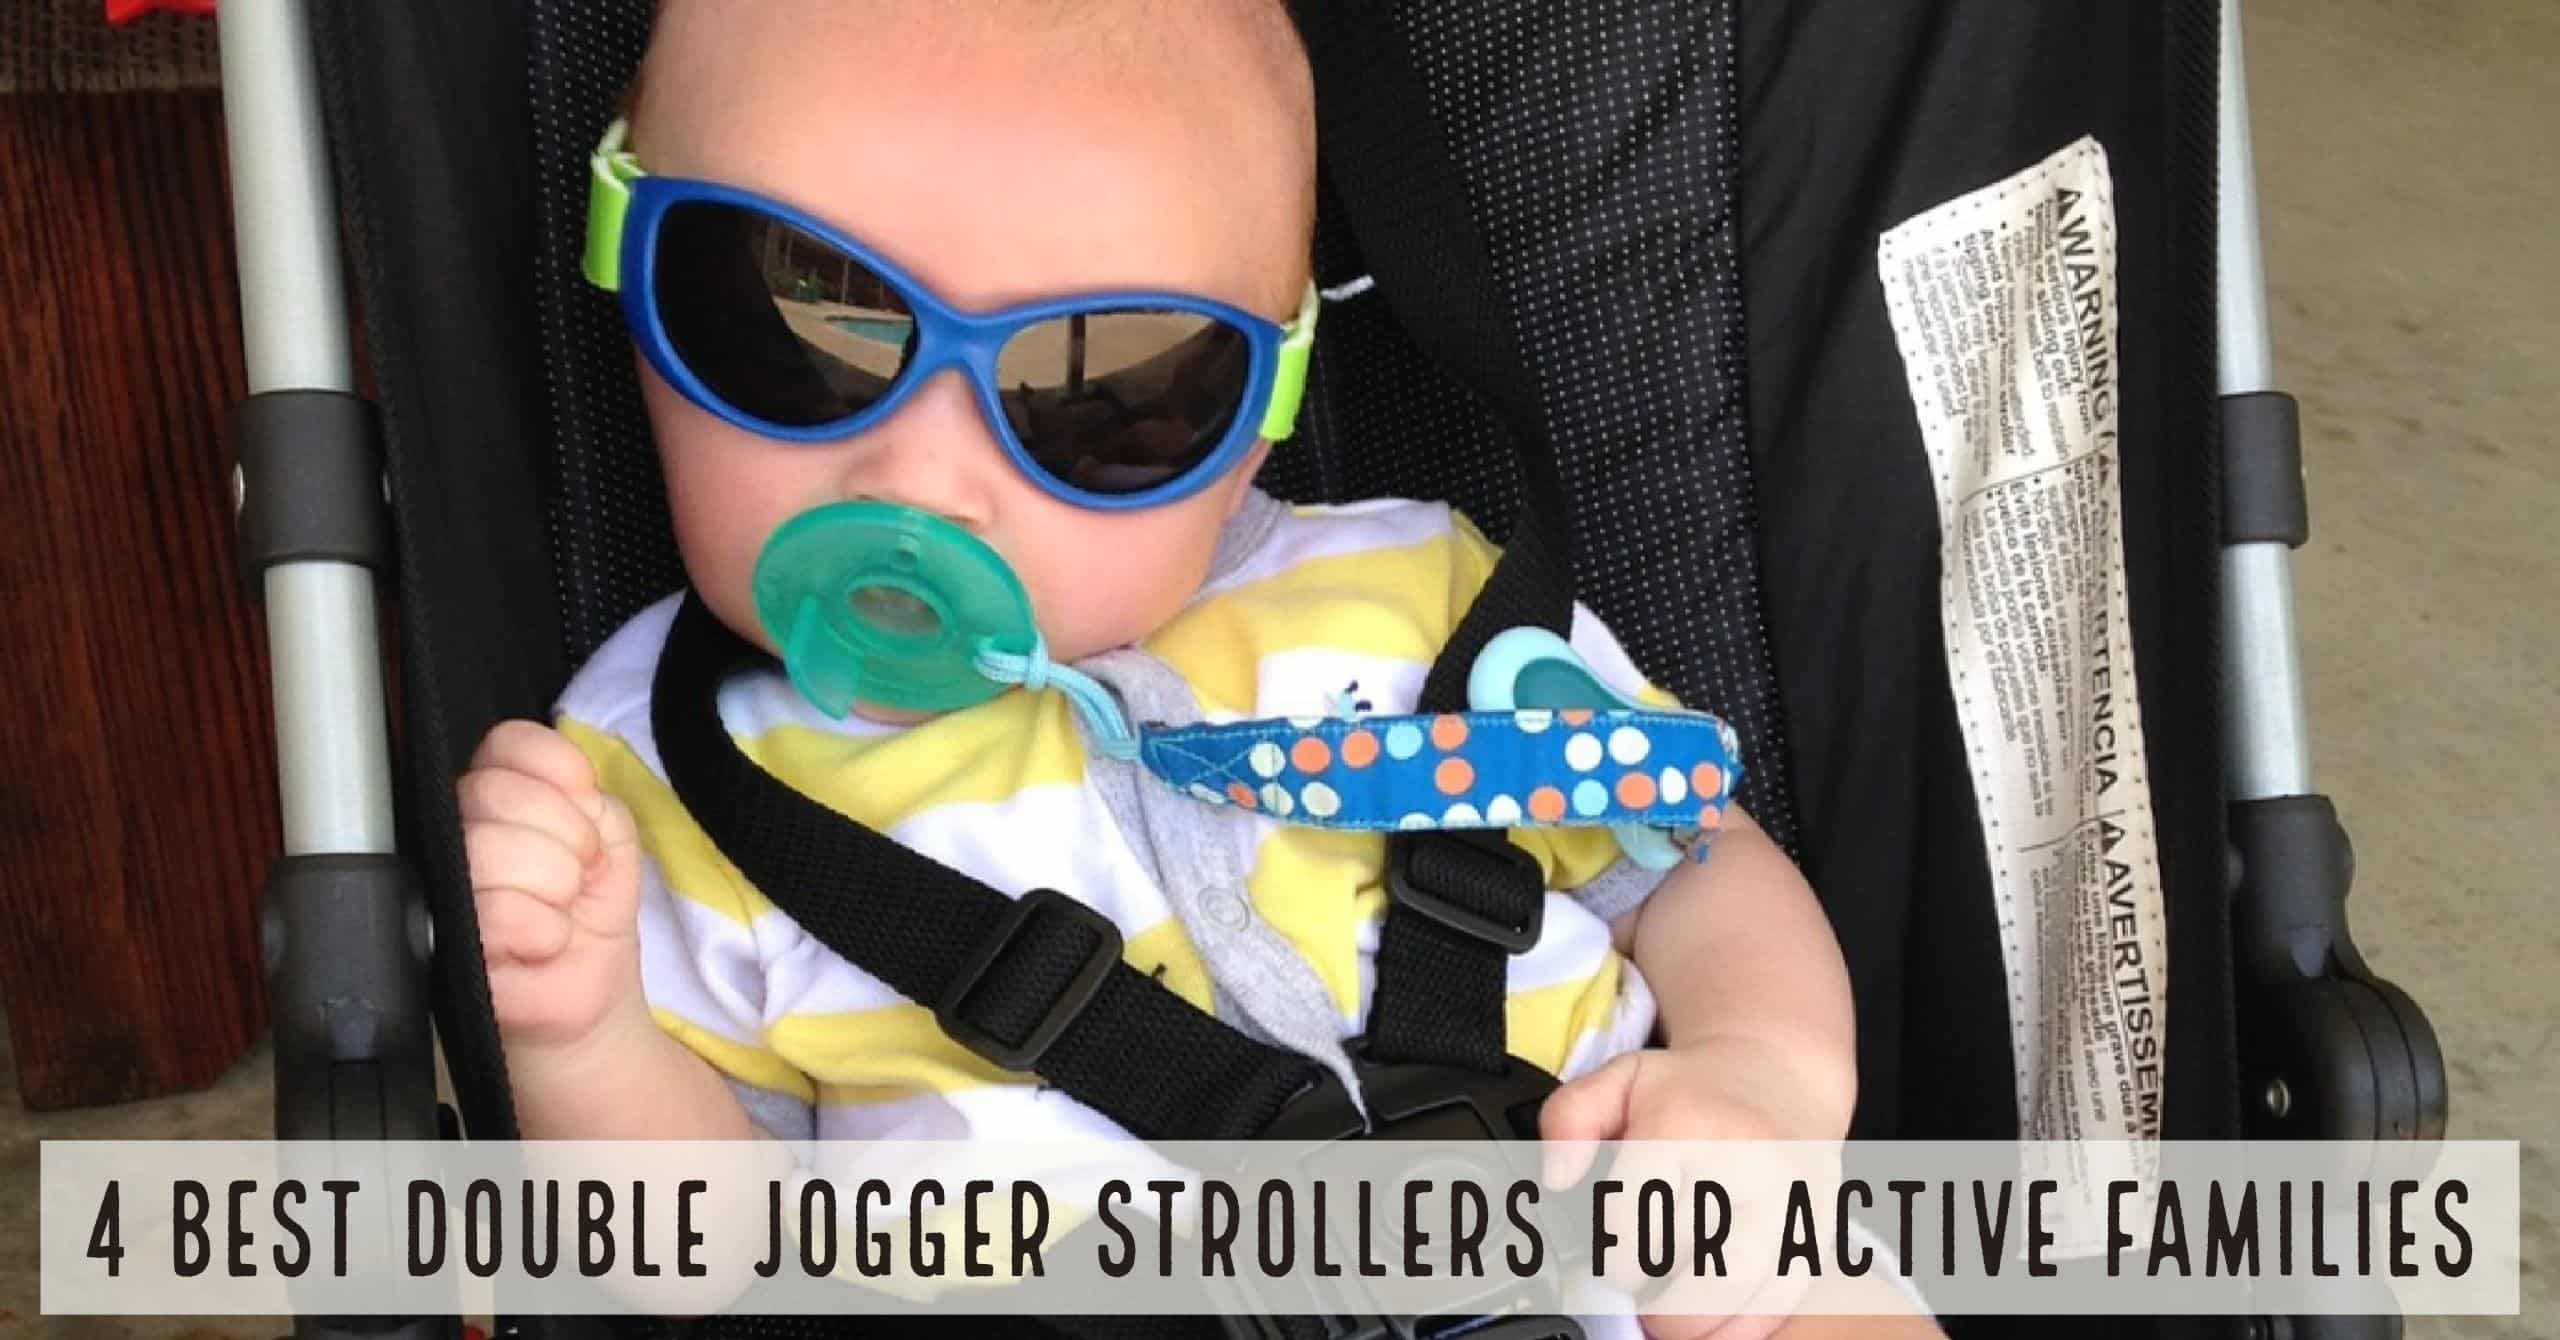 There are many other benefits to purchasing a double jogging stroller. First, it helps my wife and I stay active with both kids and second it allows us to take manage both girls at the same time (#winning). Below we break down the four (4) best double jogger/running strollers for active families.